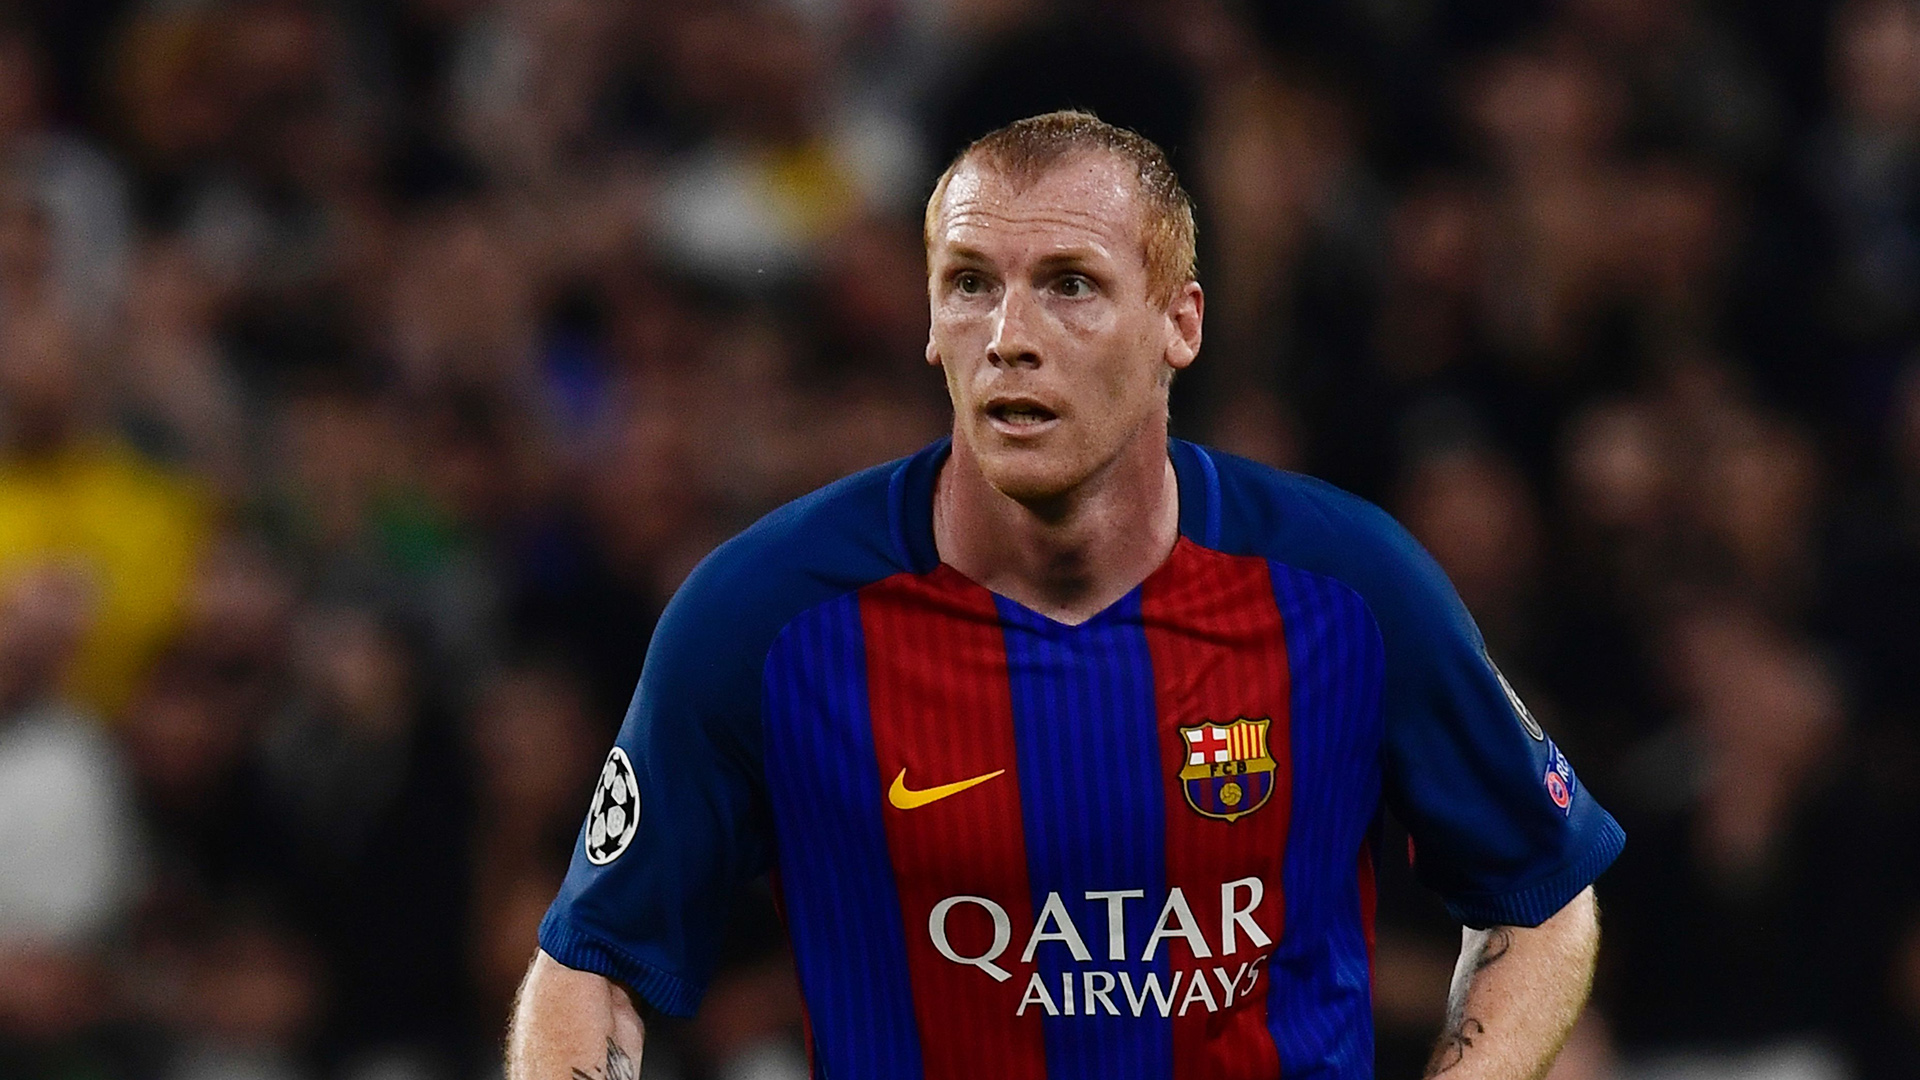 Transfer news: Barcelona confirm Jeremy Mathieu exit after allowing him to train with Sporting | Goal.com